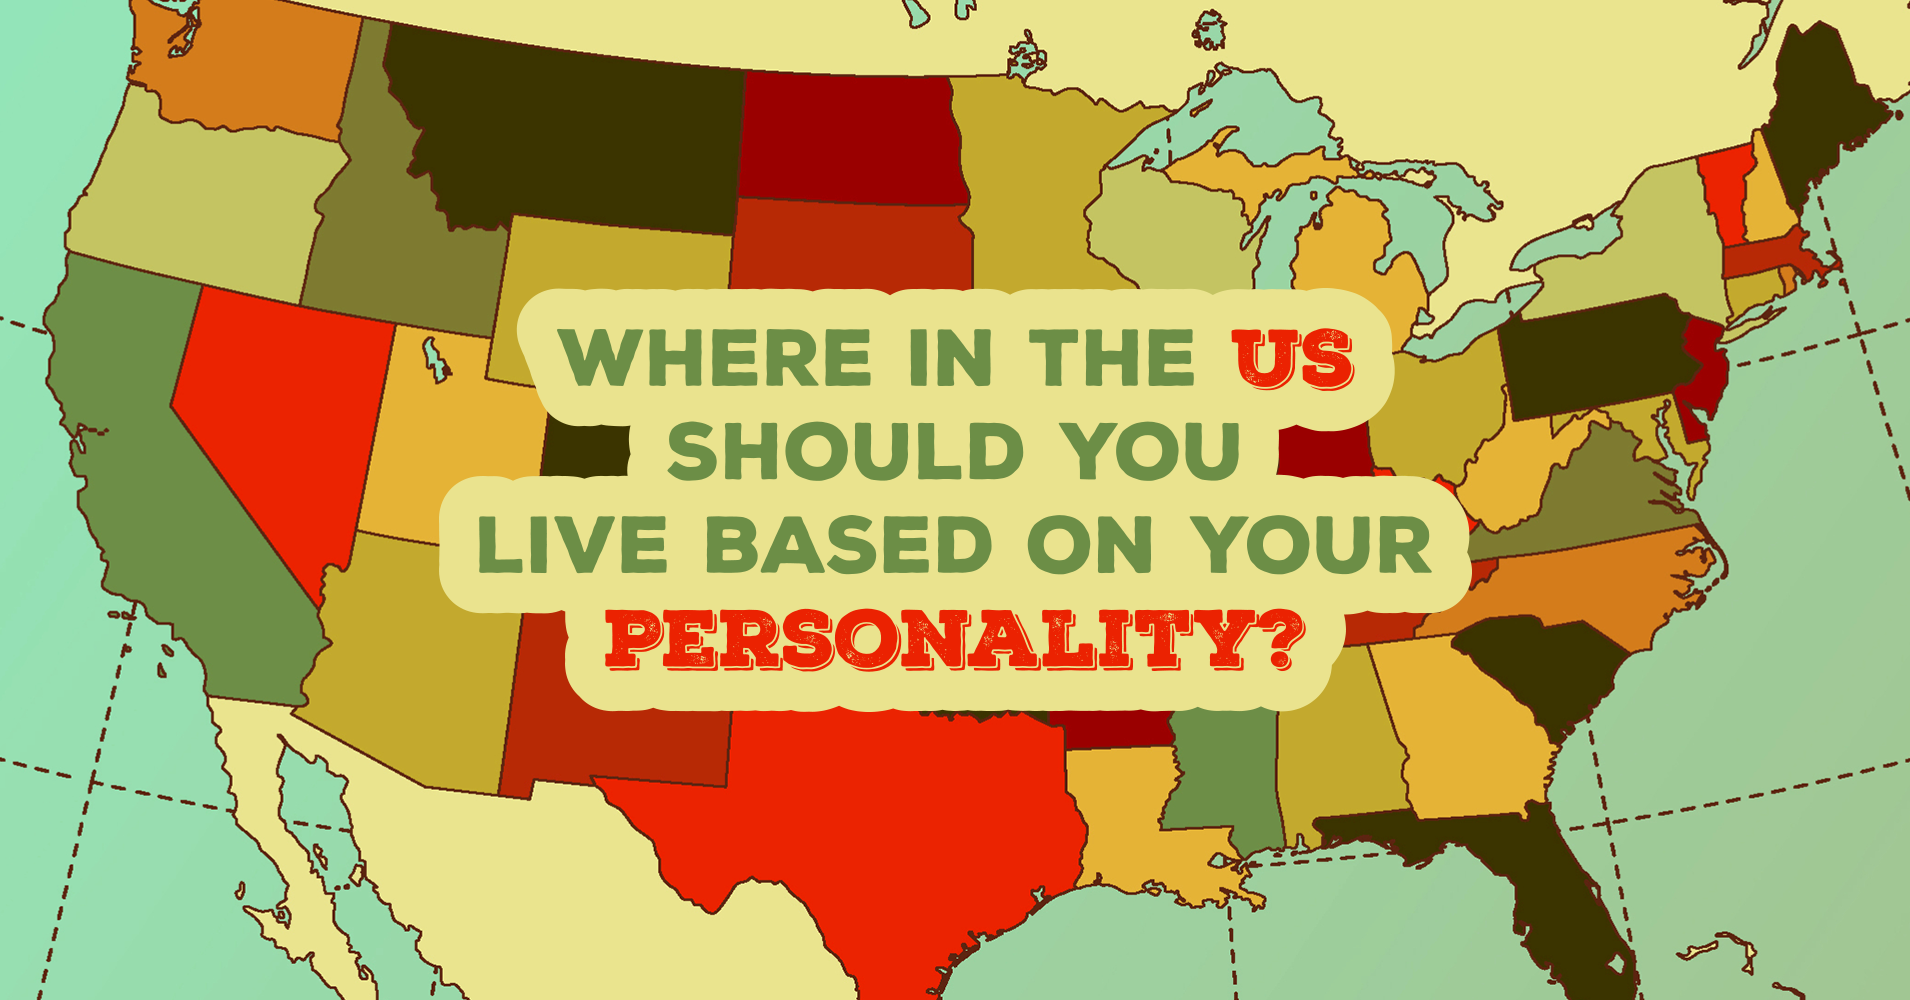 where in the us should you live based on your personality quiz quizony com